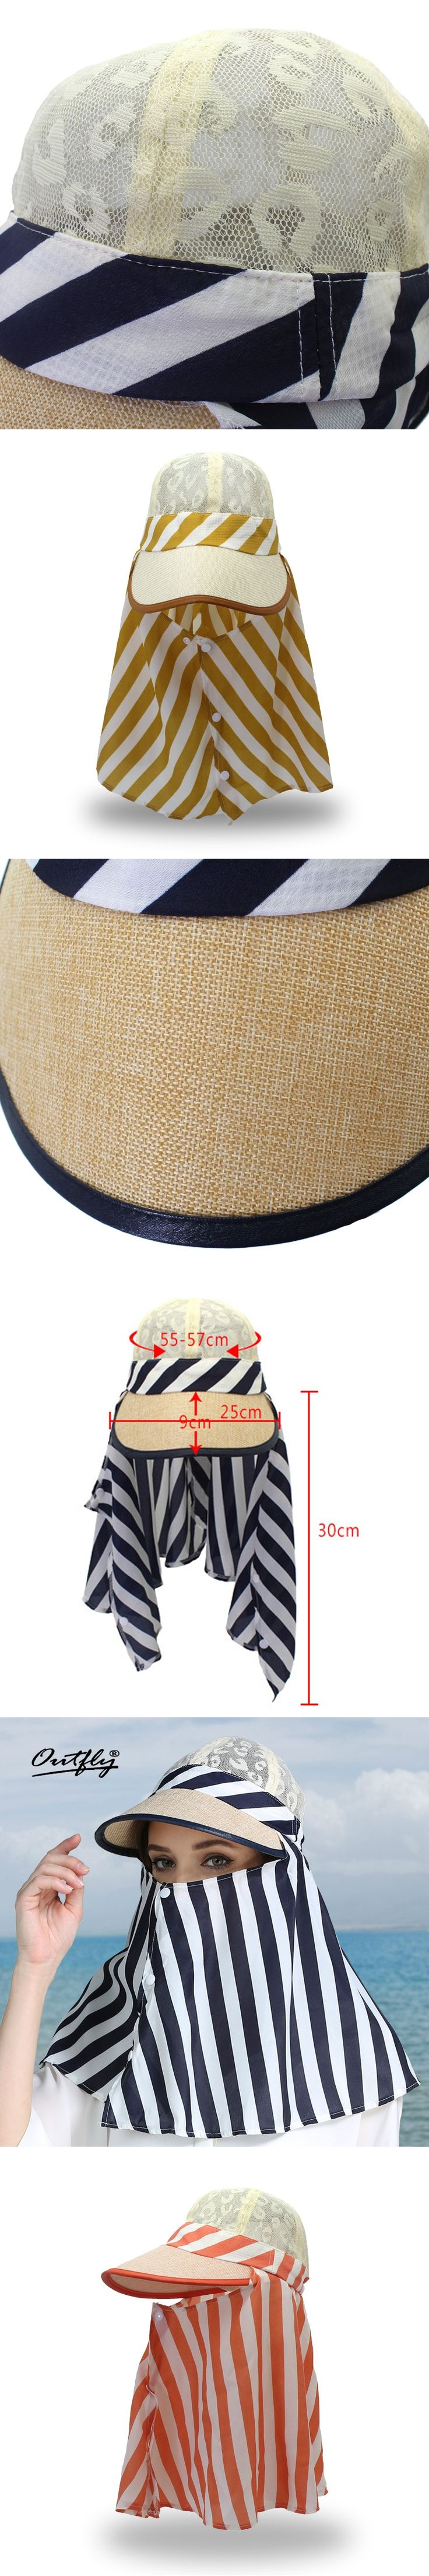 Women Uv Protection Hat lace multifunction Fishing Cap Neck Flap Face Shield Summer Sunshade Protection Sun Hat qf12